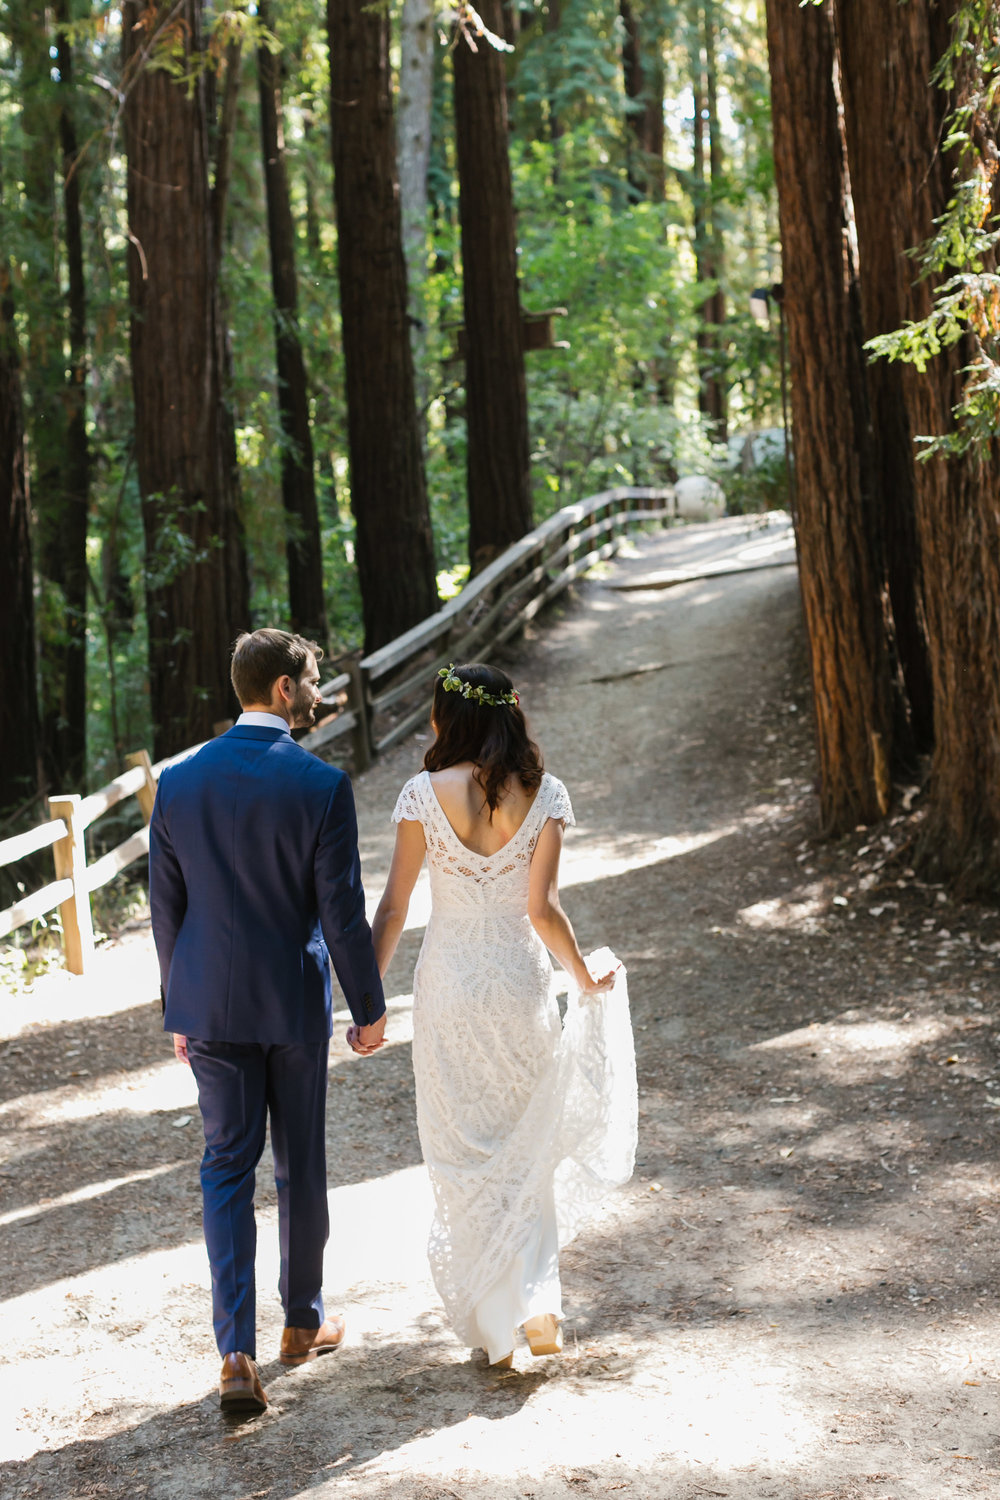 Bride holds her lace wedding dress and holds hands with her husband as they walk into the forest